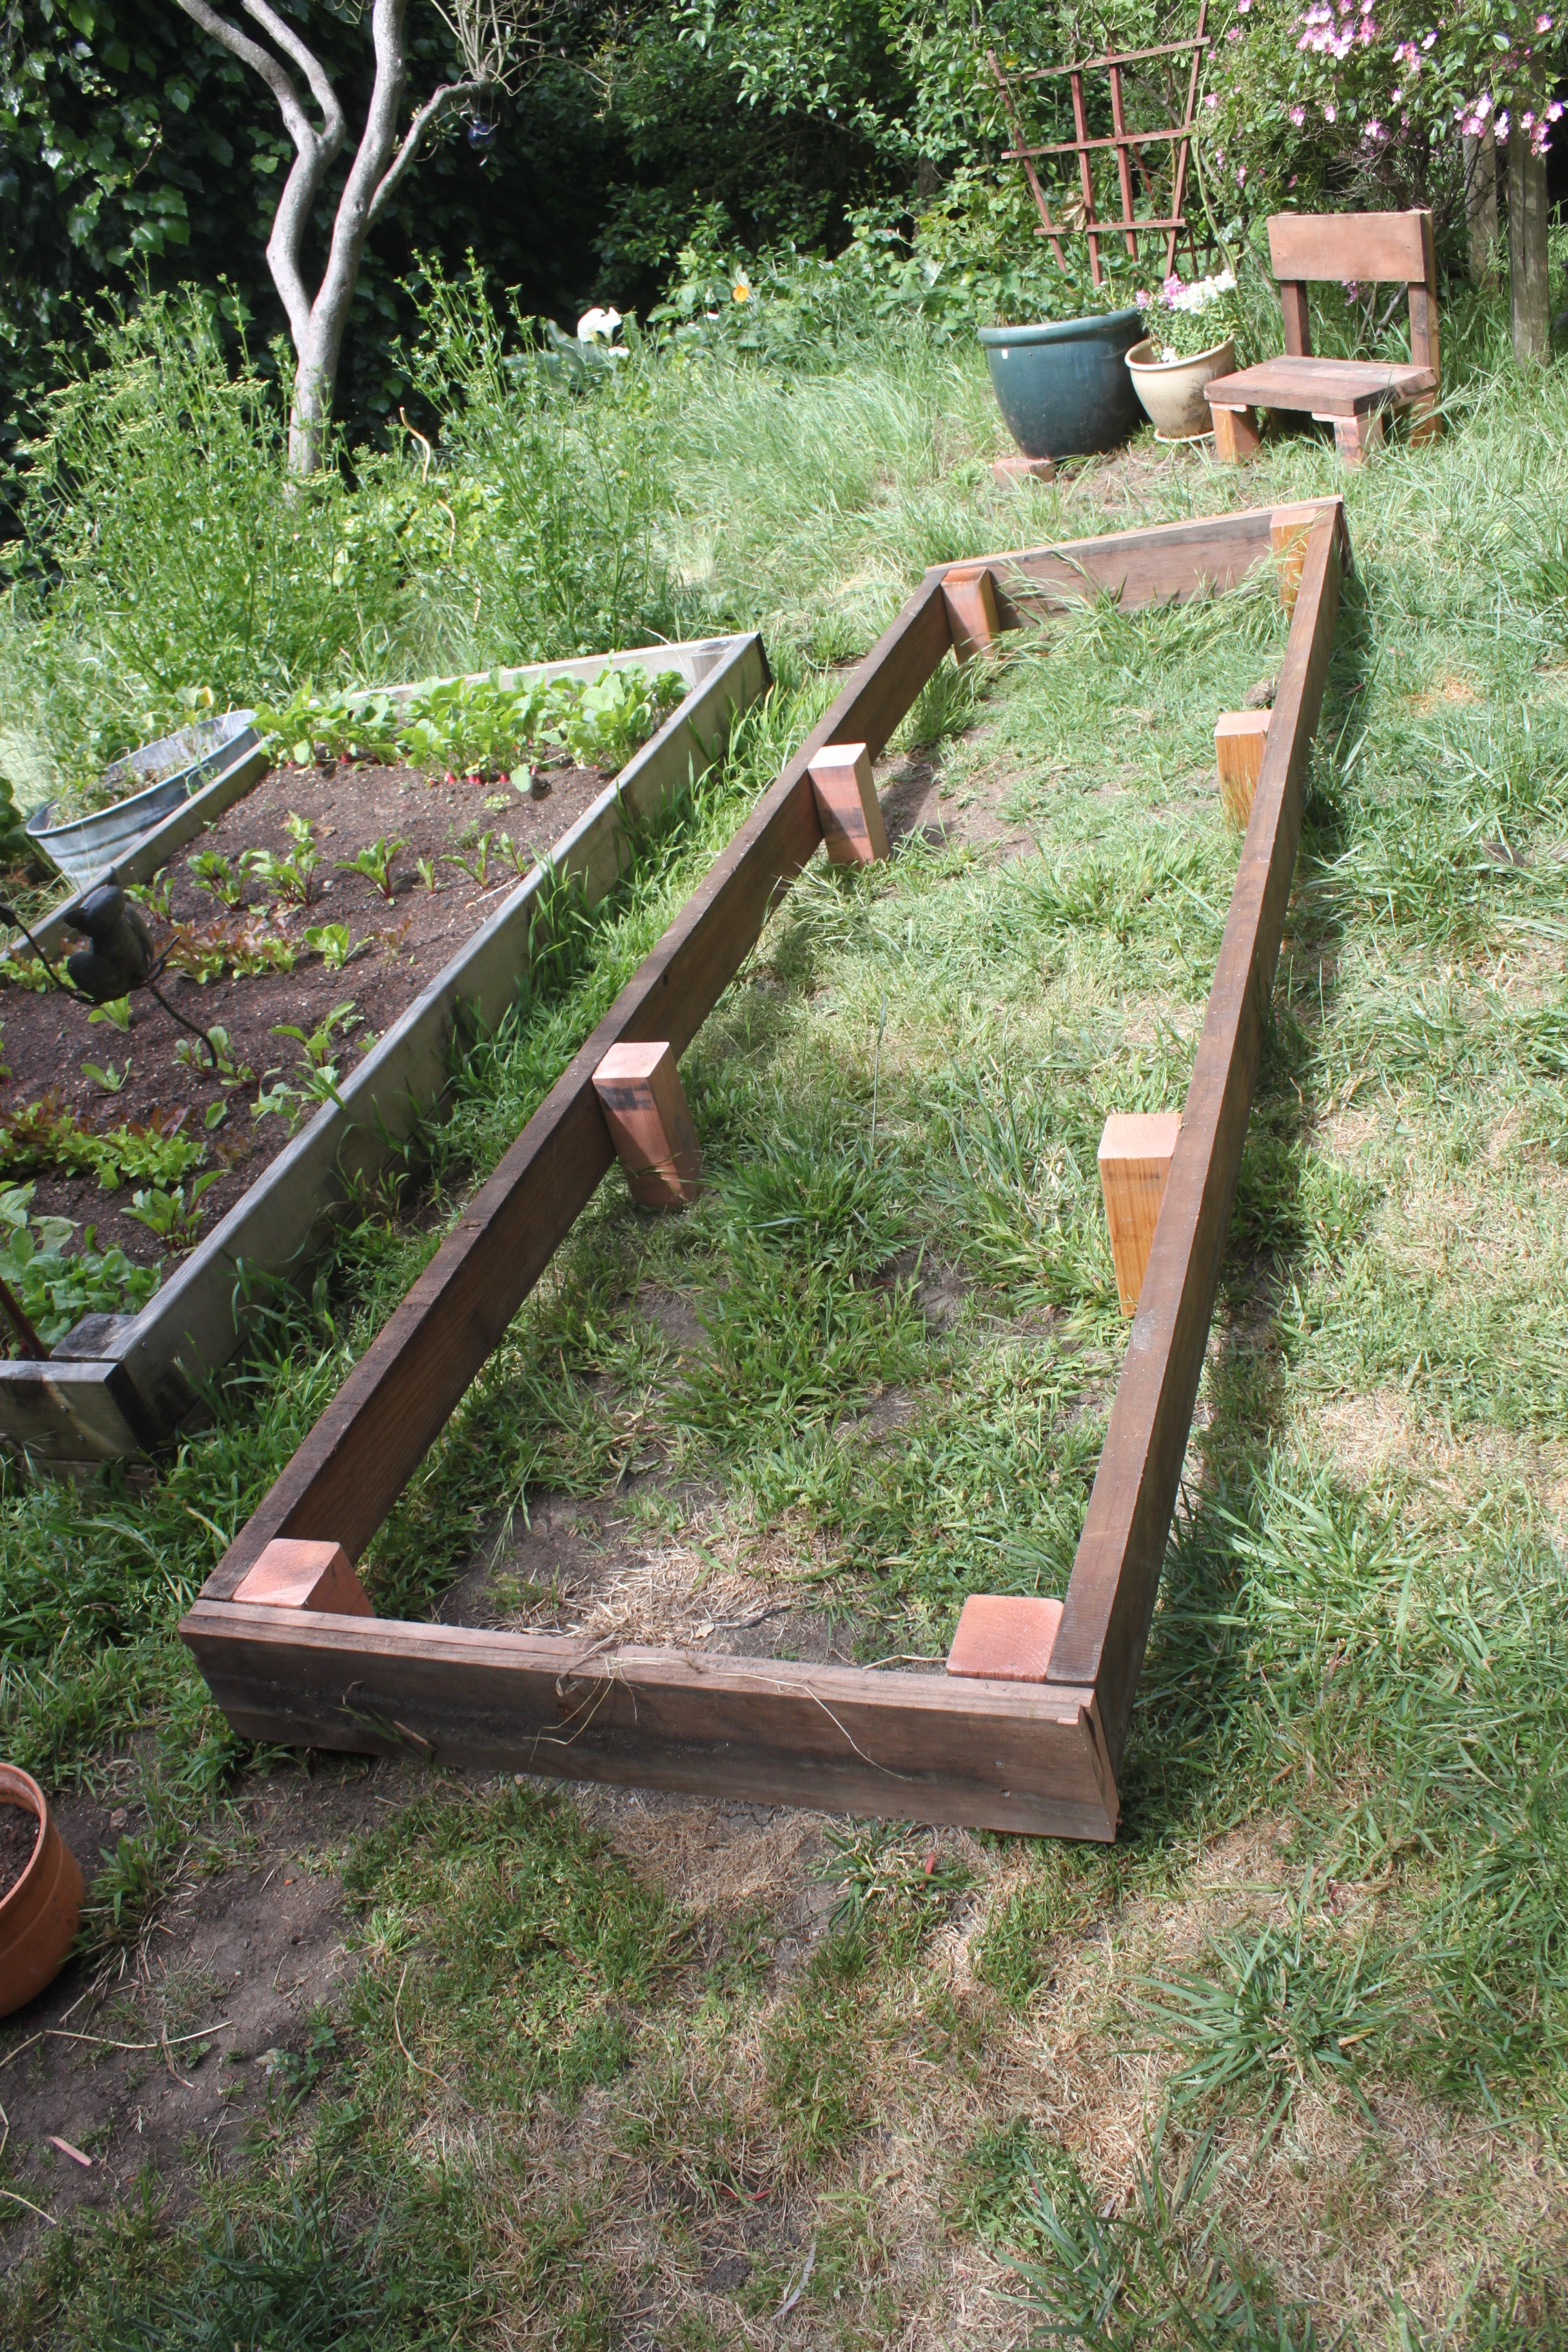 Best ideas about DIY Raised Planter Boxes . Save or Pin Recycle Wood For DIY Raised Garden Planter Boxes Ideas In Now.